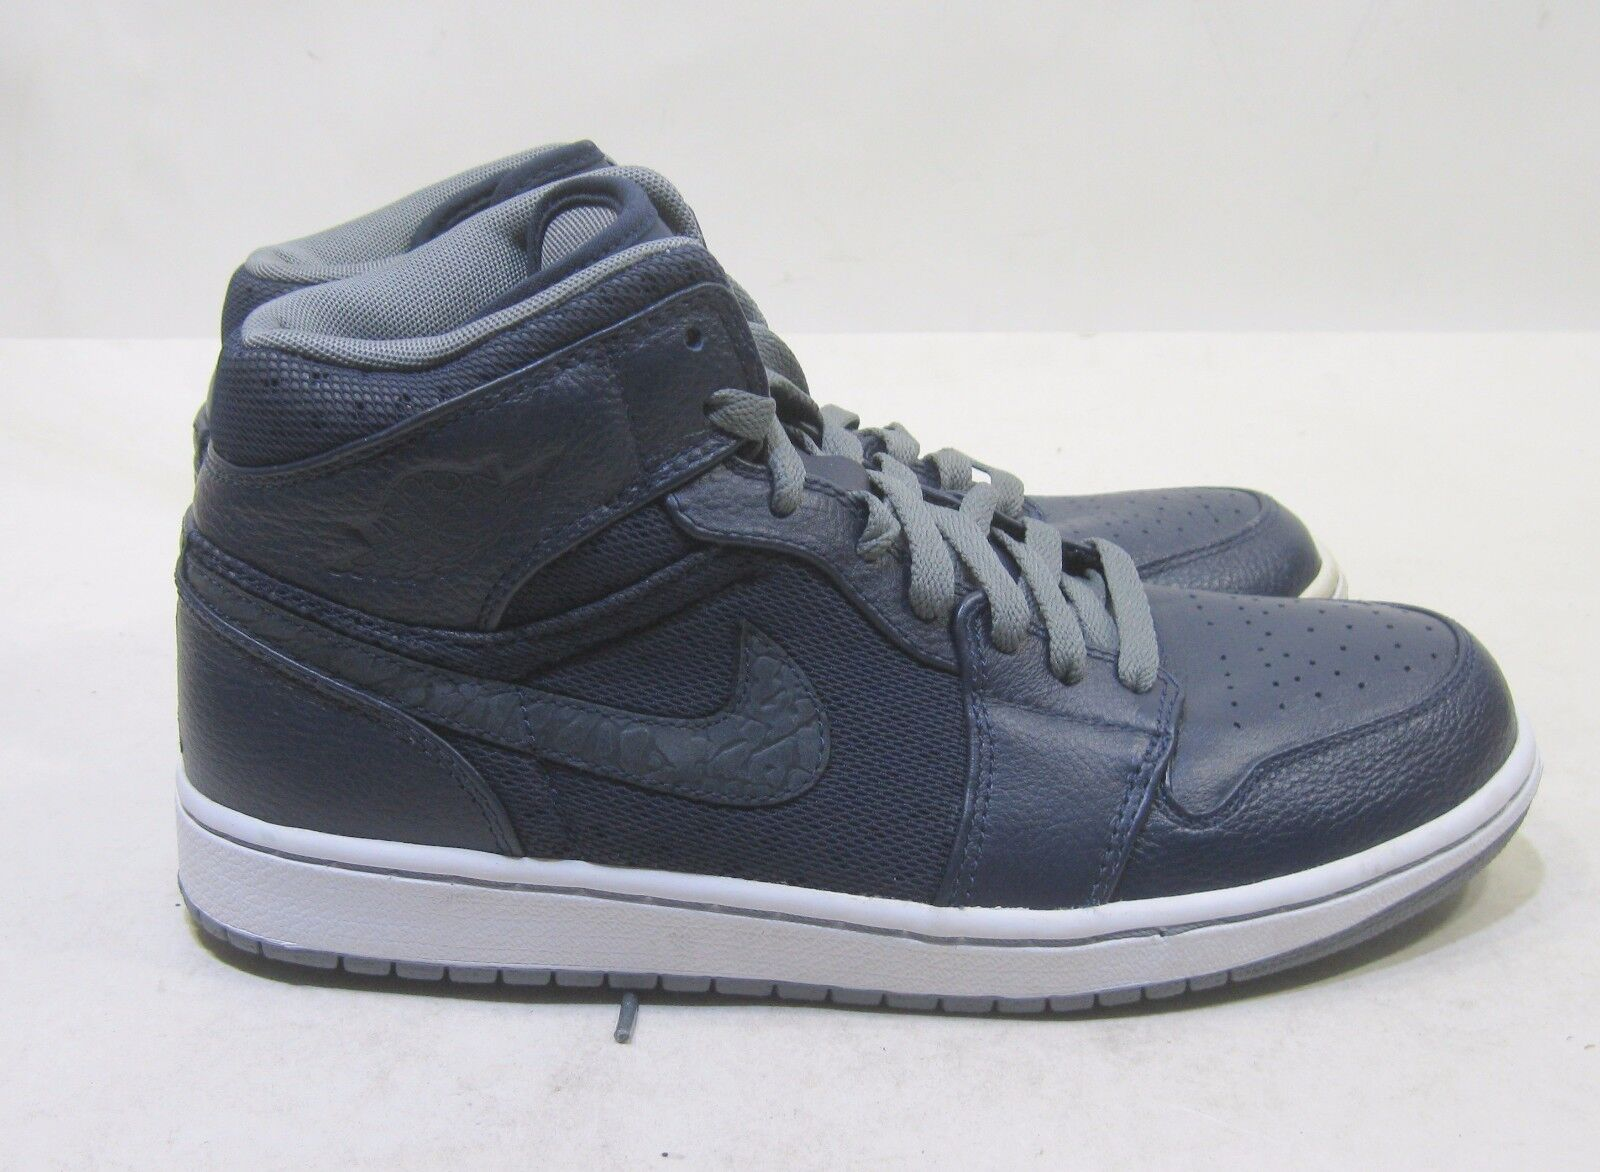 Air Jordan 1 hat Obsidian/Cool Grey-White 364770 402 Comfortable Great discount